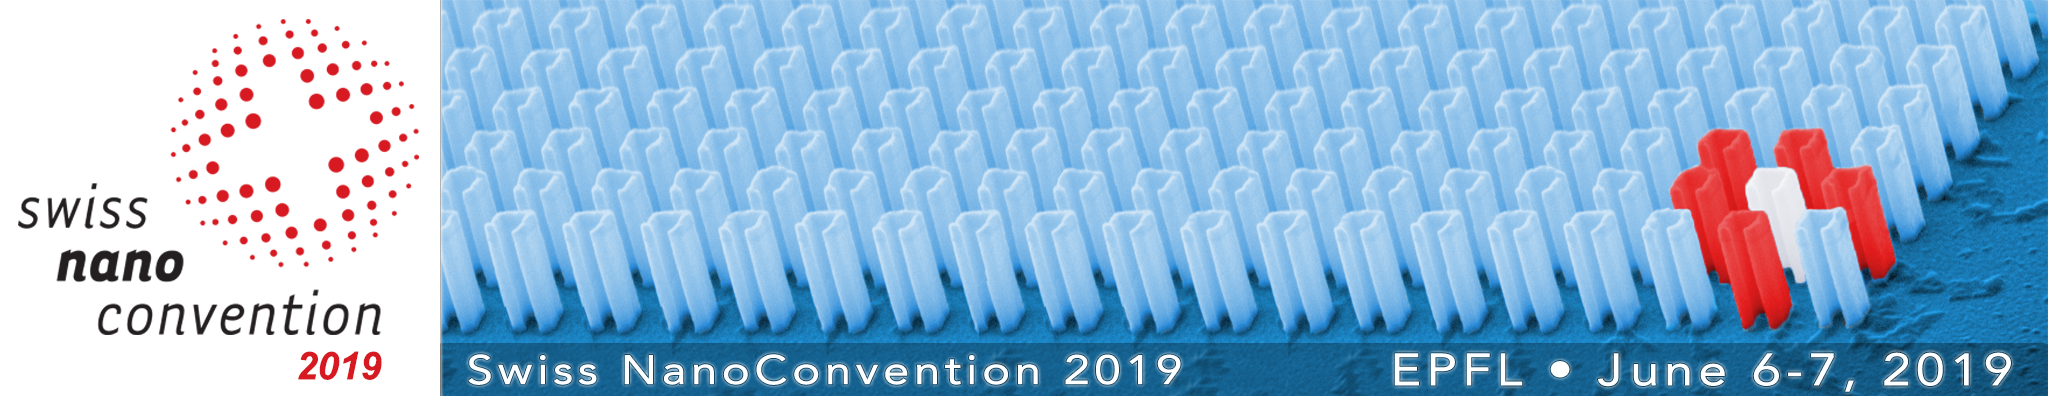 Swiss NanoConvention 2019